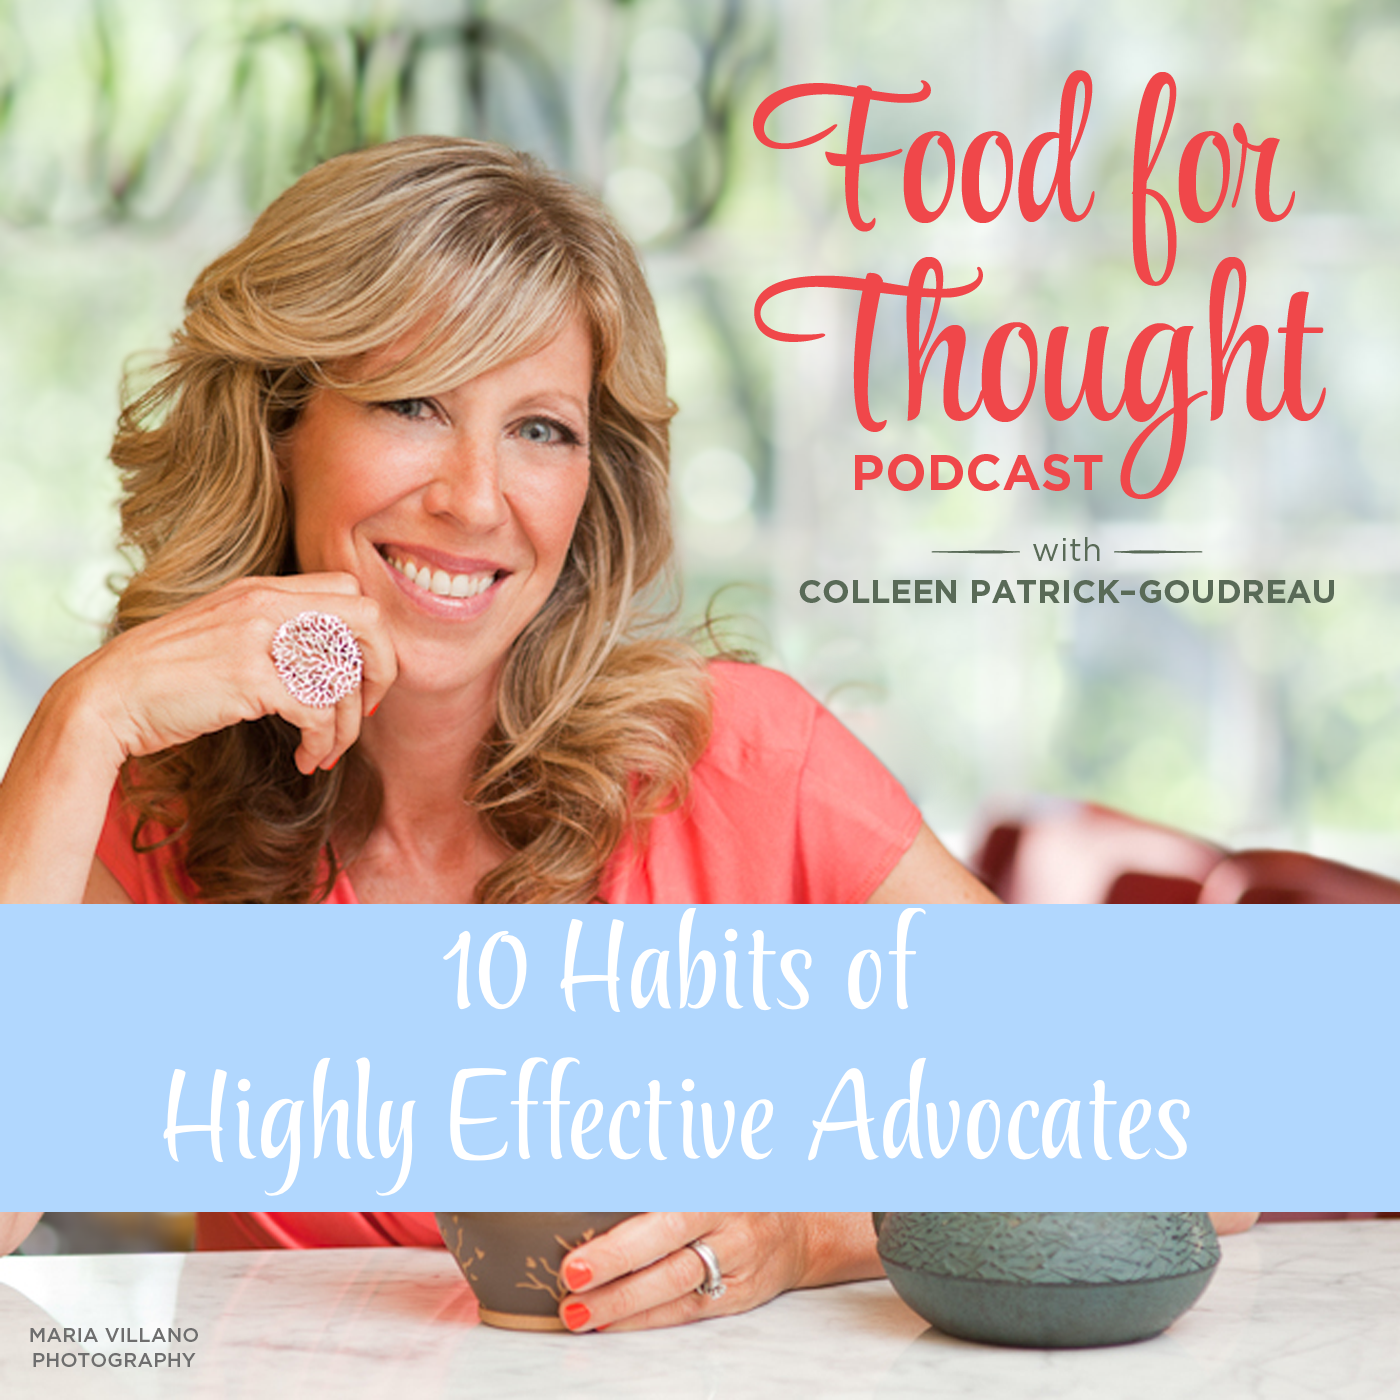 10 Habits of Highly Effective Advocates